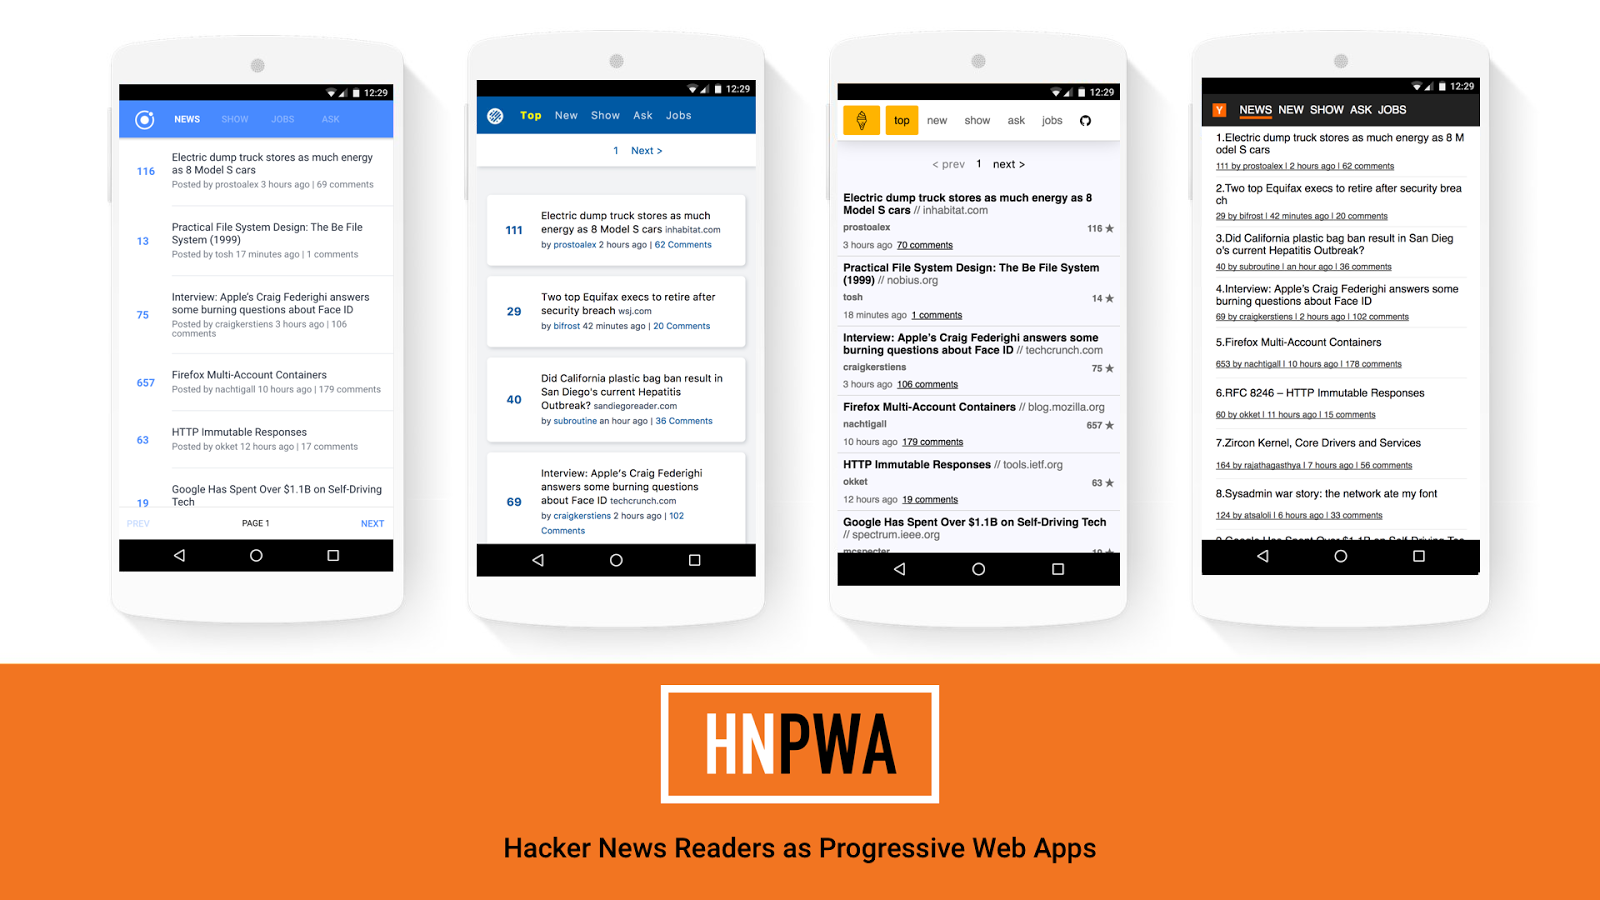 Hacker News Progressive Web Apps - HNPWA